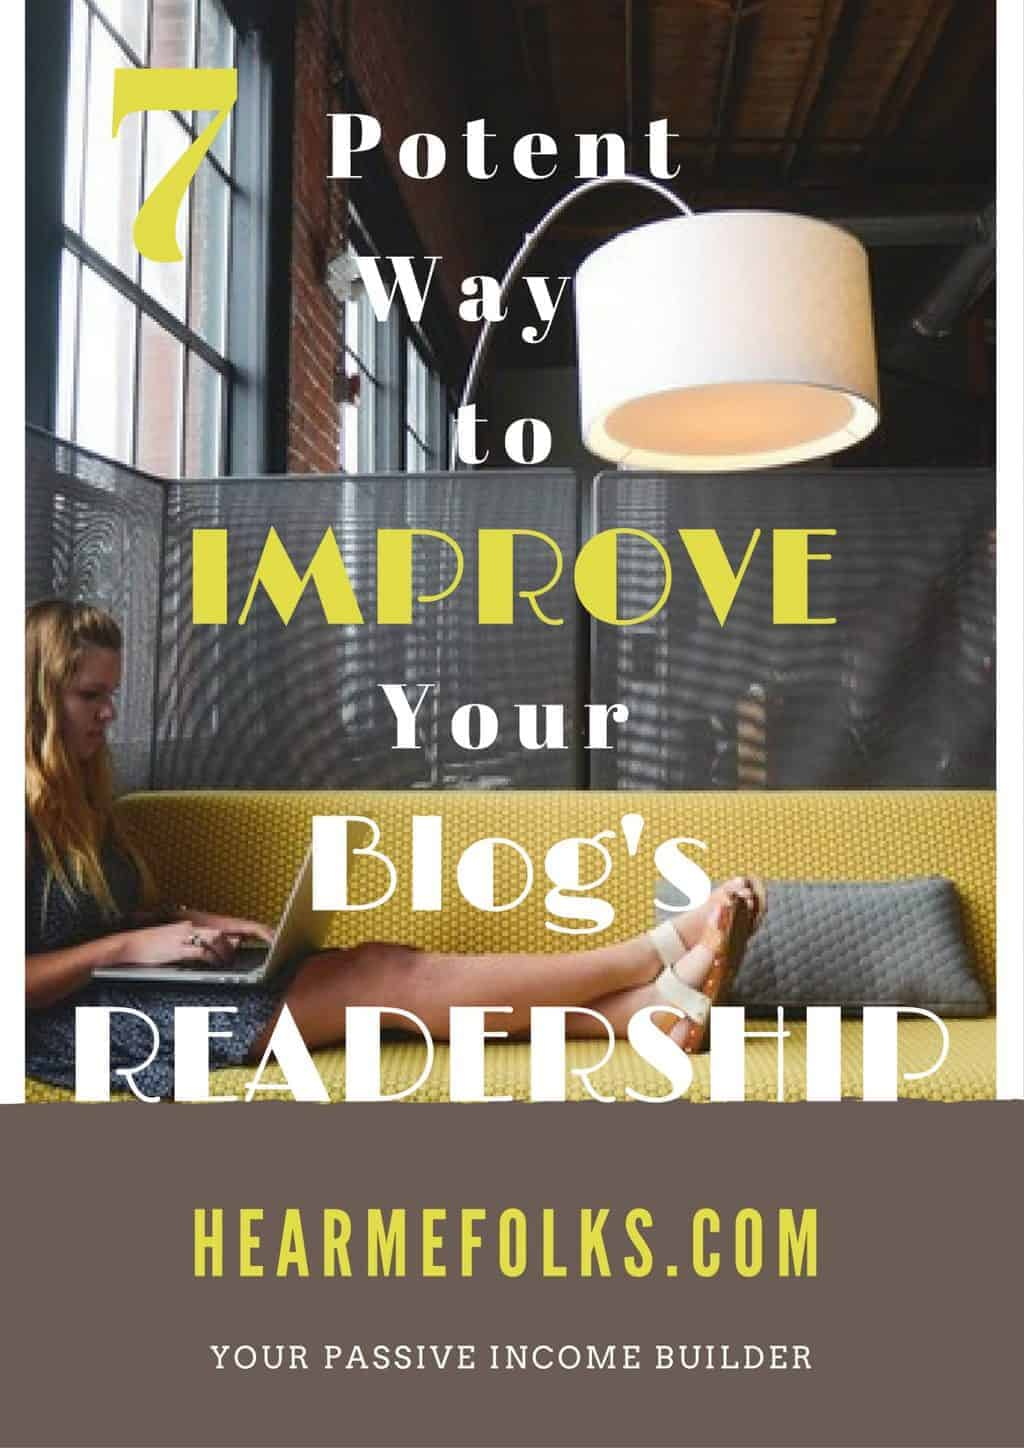 7 Basic Yet Potent Ways to Improve Your Blog's Readership in 2017!